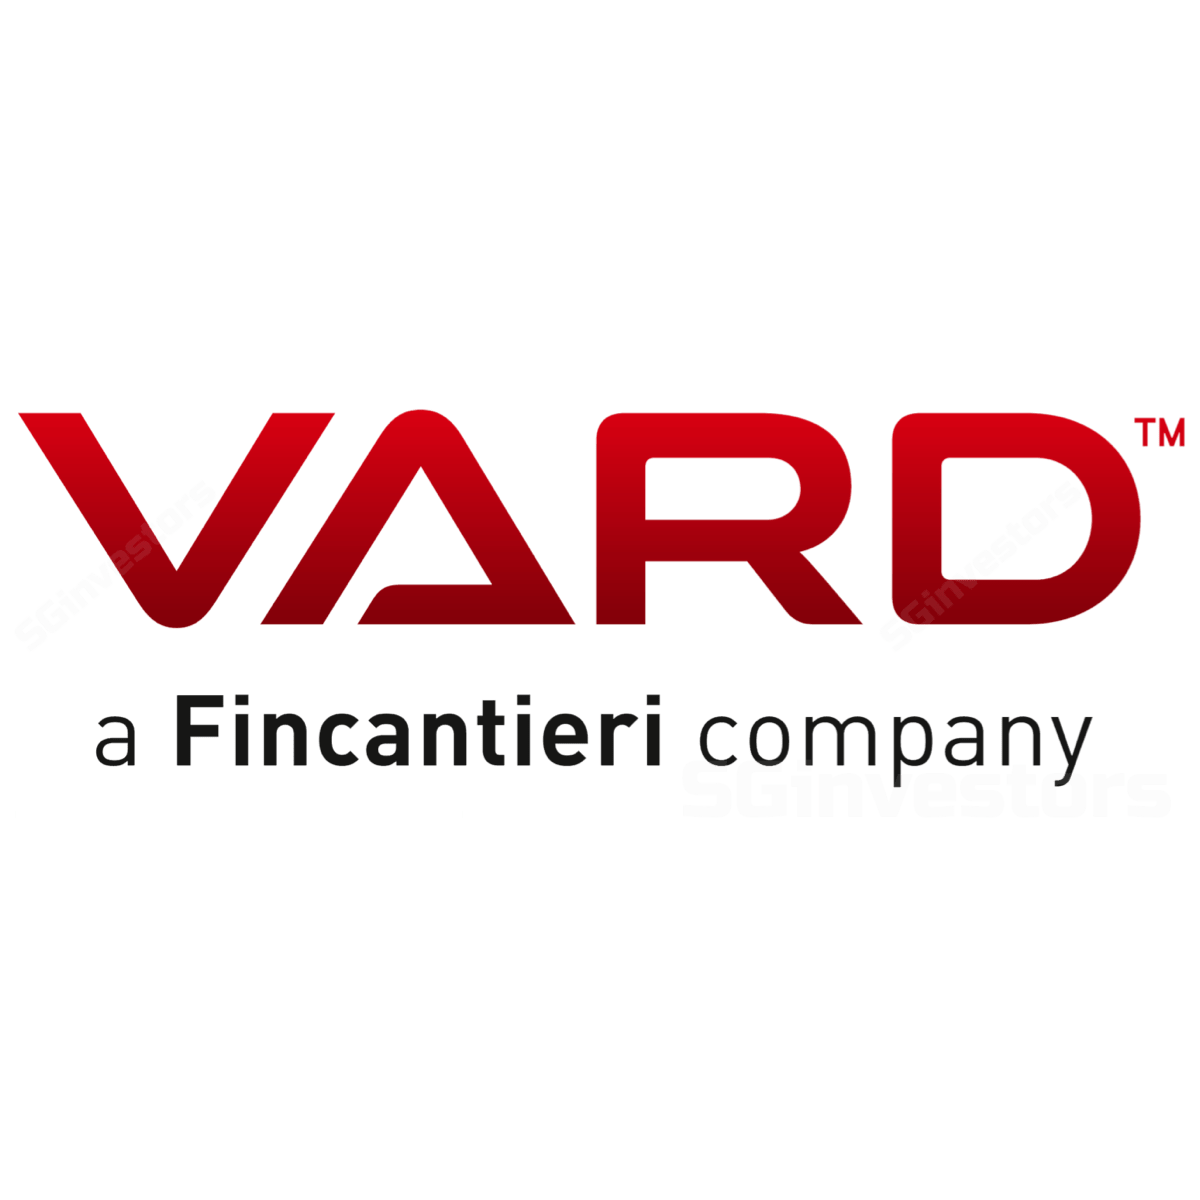 Vard Said Its Letter Of Intent To Build An Expedition Ship For An  International Cruise Company Had Expired, In A Prepared Statement.